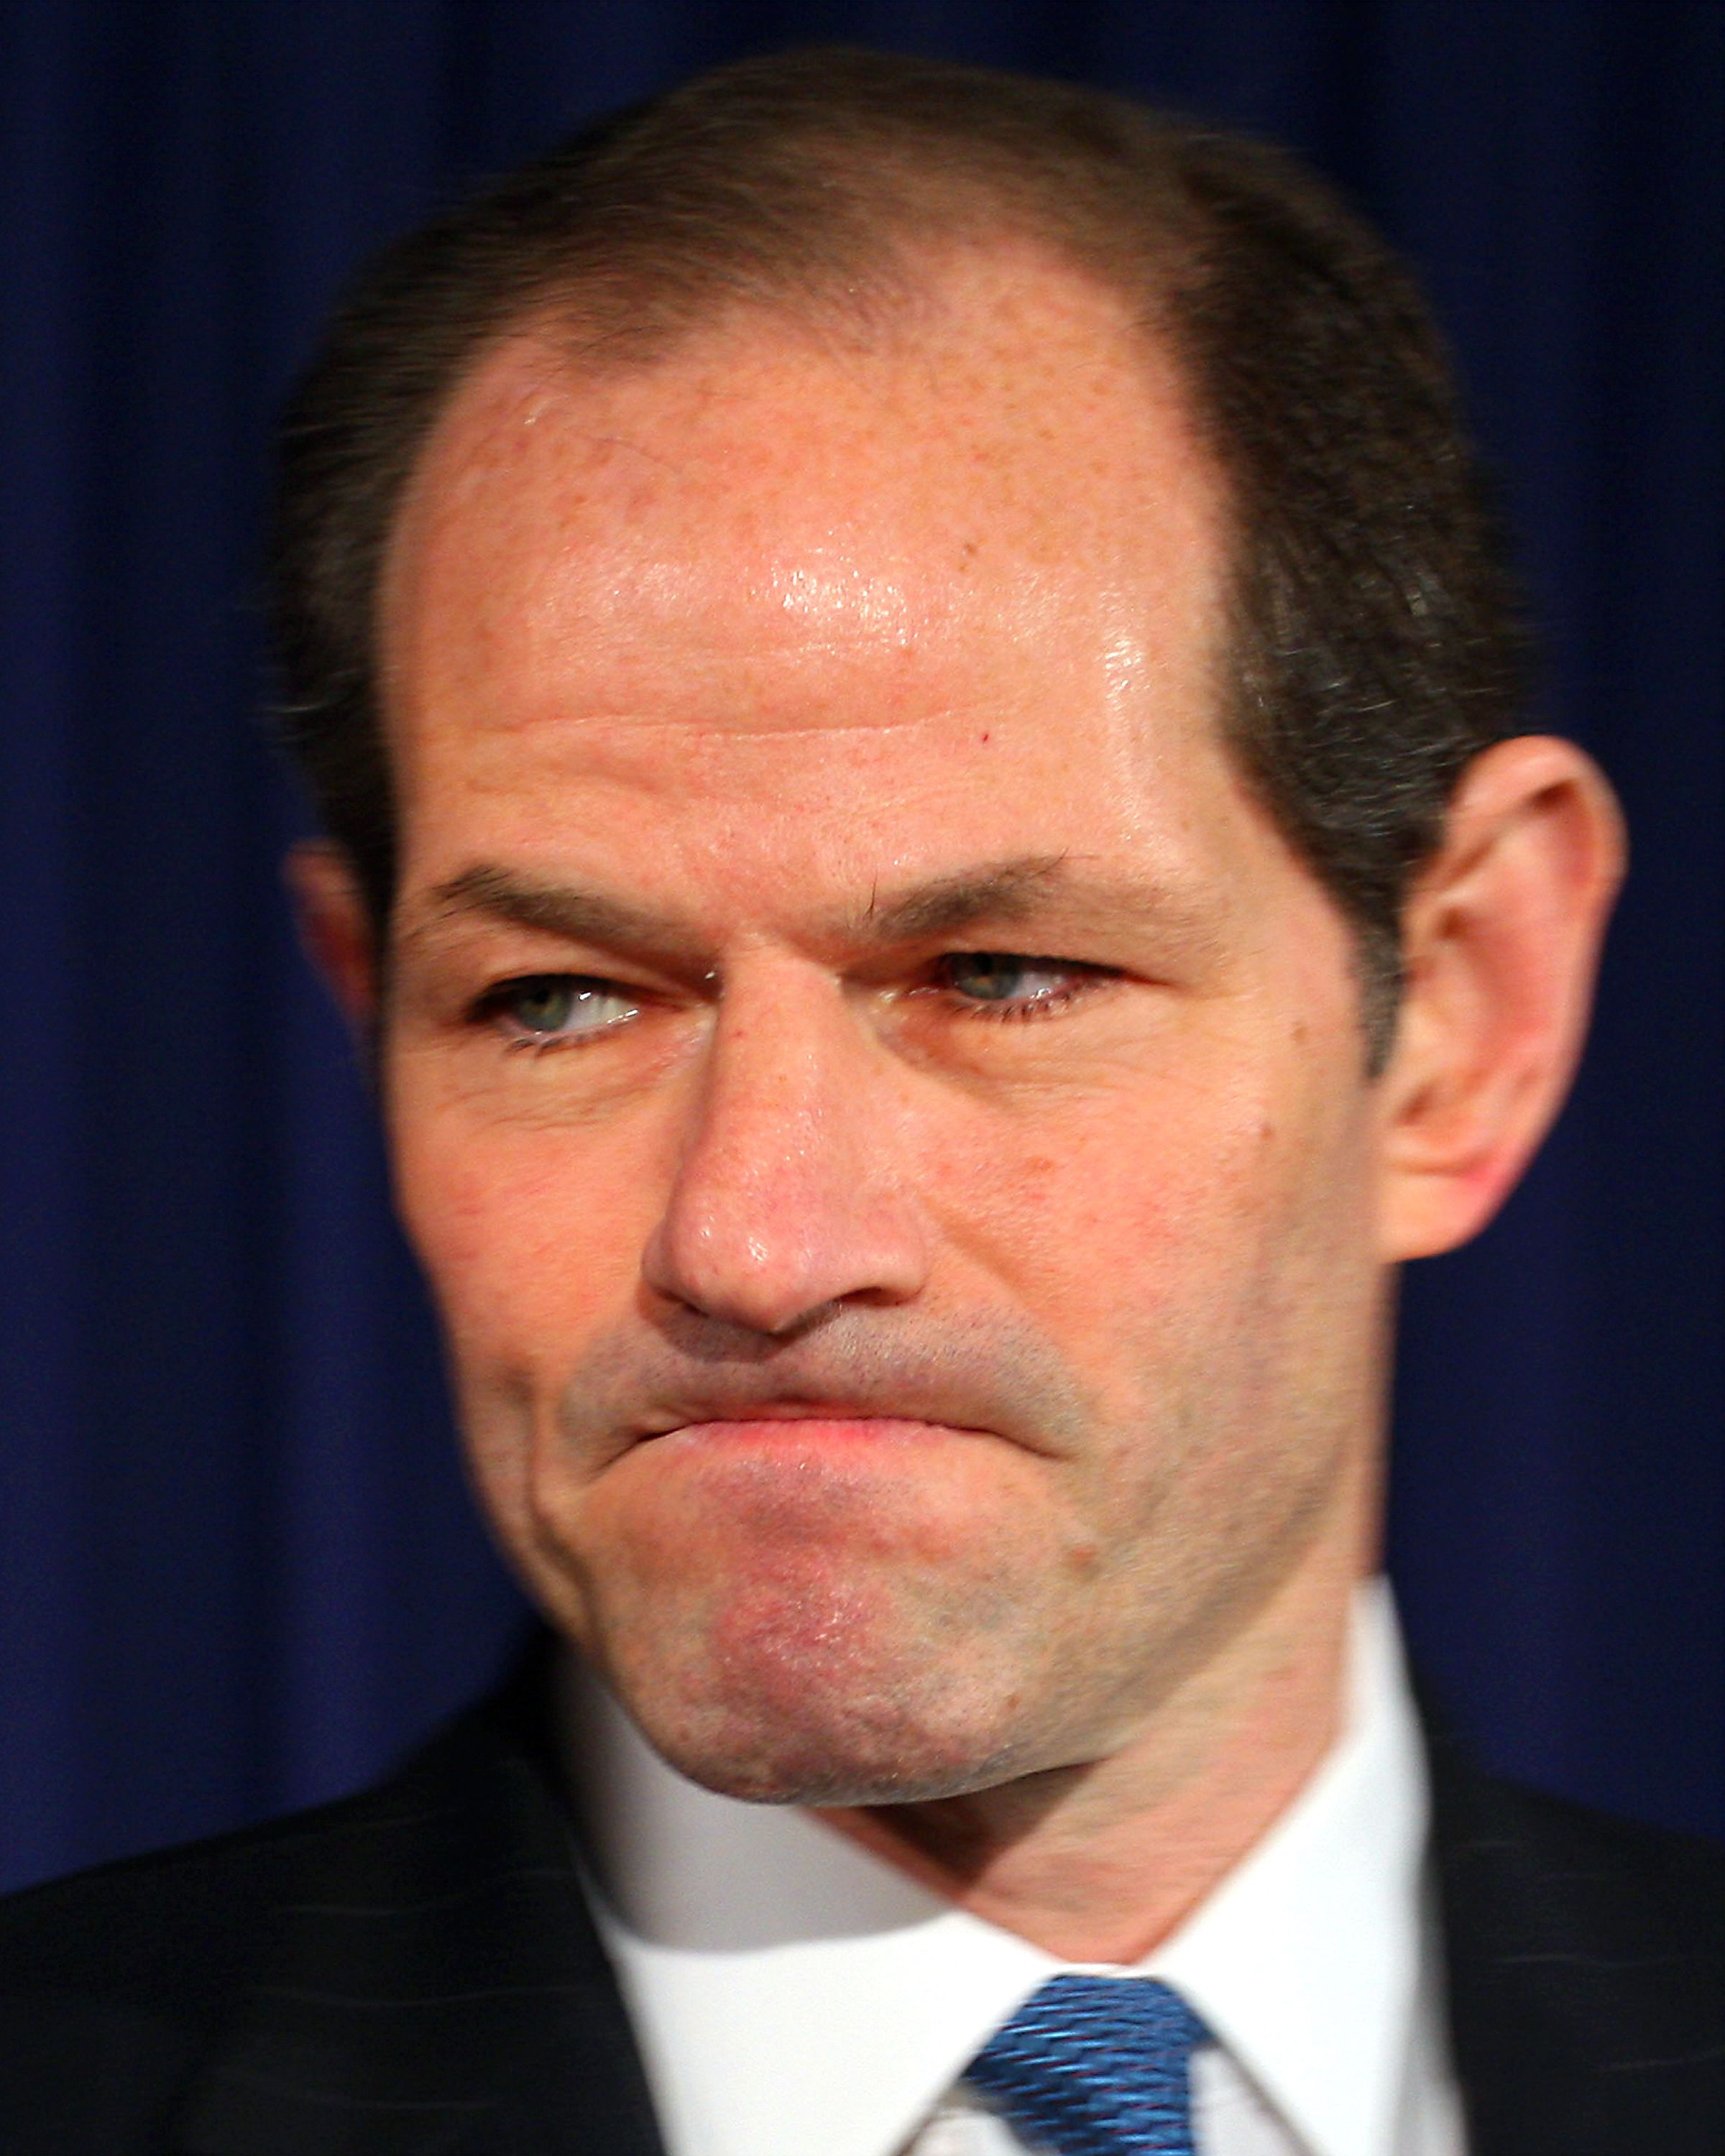 Governor Eliot Spitzer announces his resignation at his midtown office on Wednesday afternoon just two days after it was uncovered that he was a client of a high-class international prostitution ring.